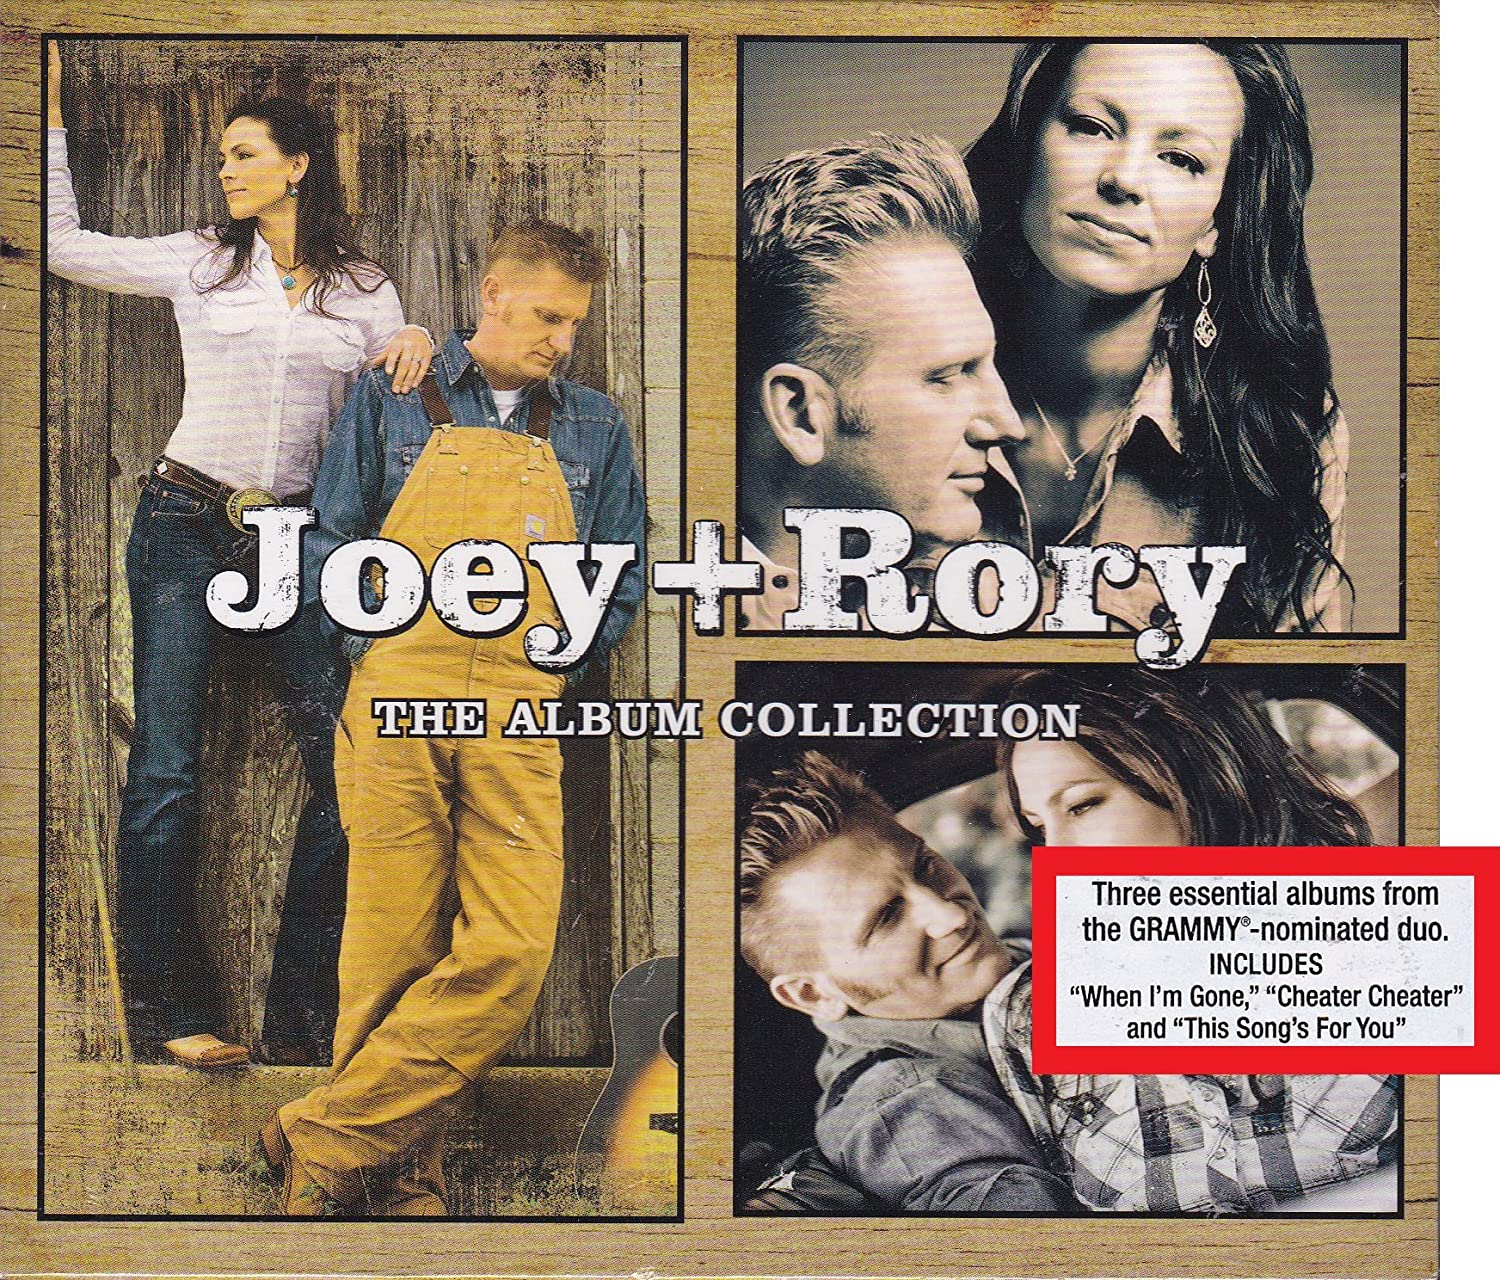 Amazon.com: Joey + Rory: The Album Collection: JOEY & RORY: Cell ...